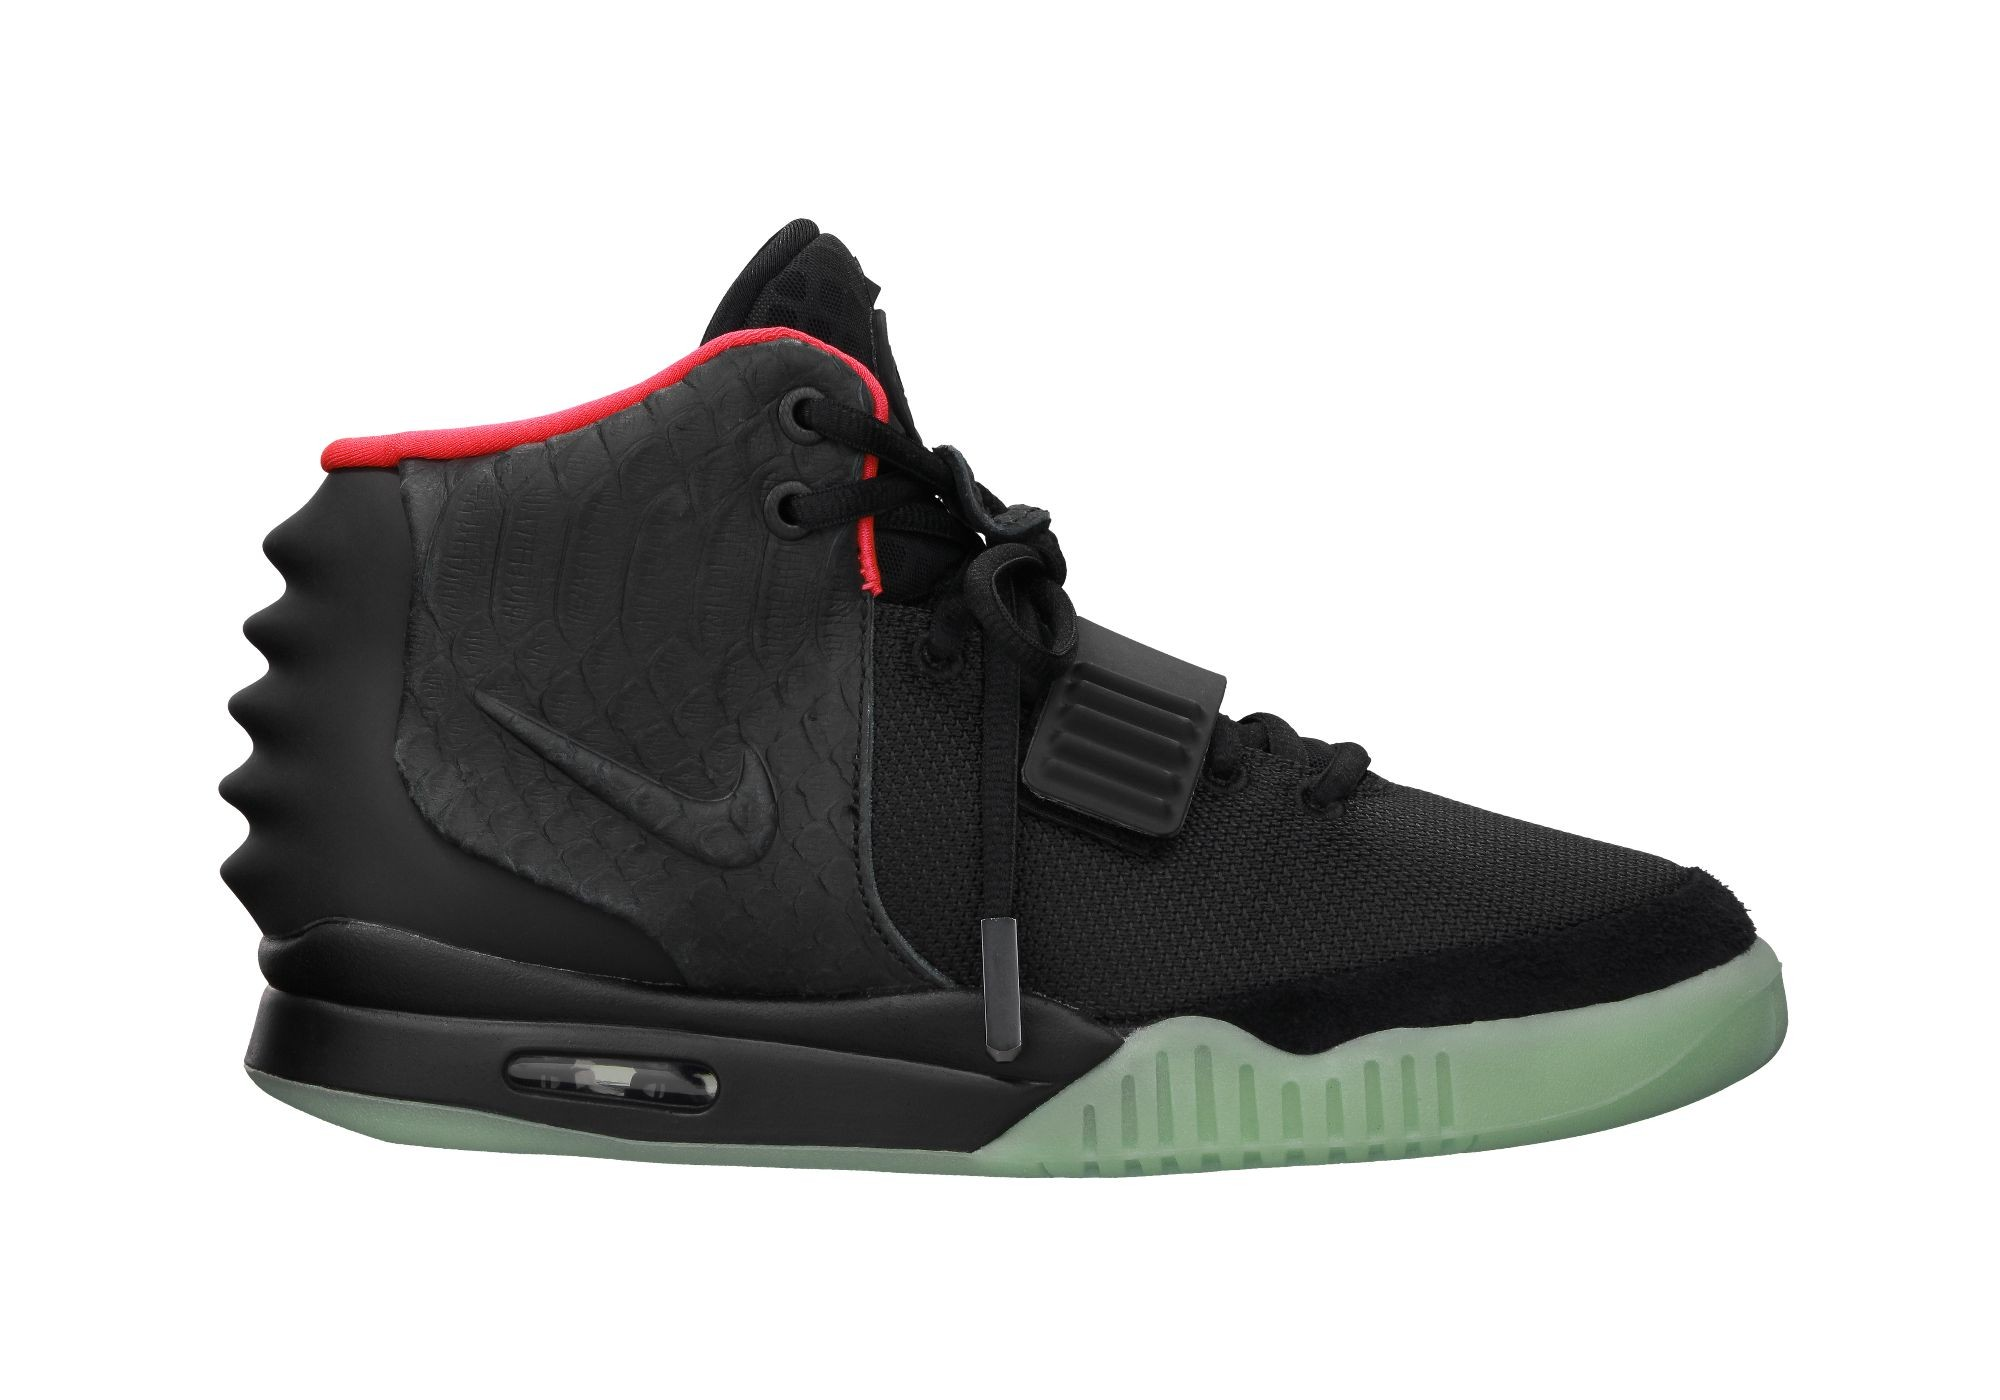 Nike Air Yeezy 2 Black Solar Red x Kanye West Kim Kardashian 508214-006 Sneakers